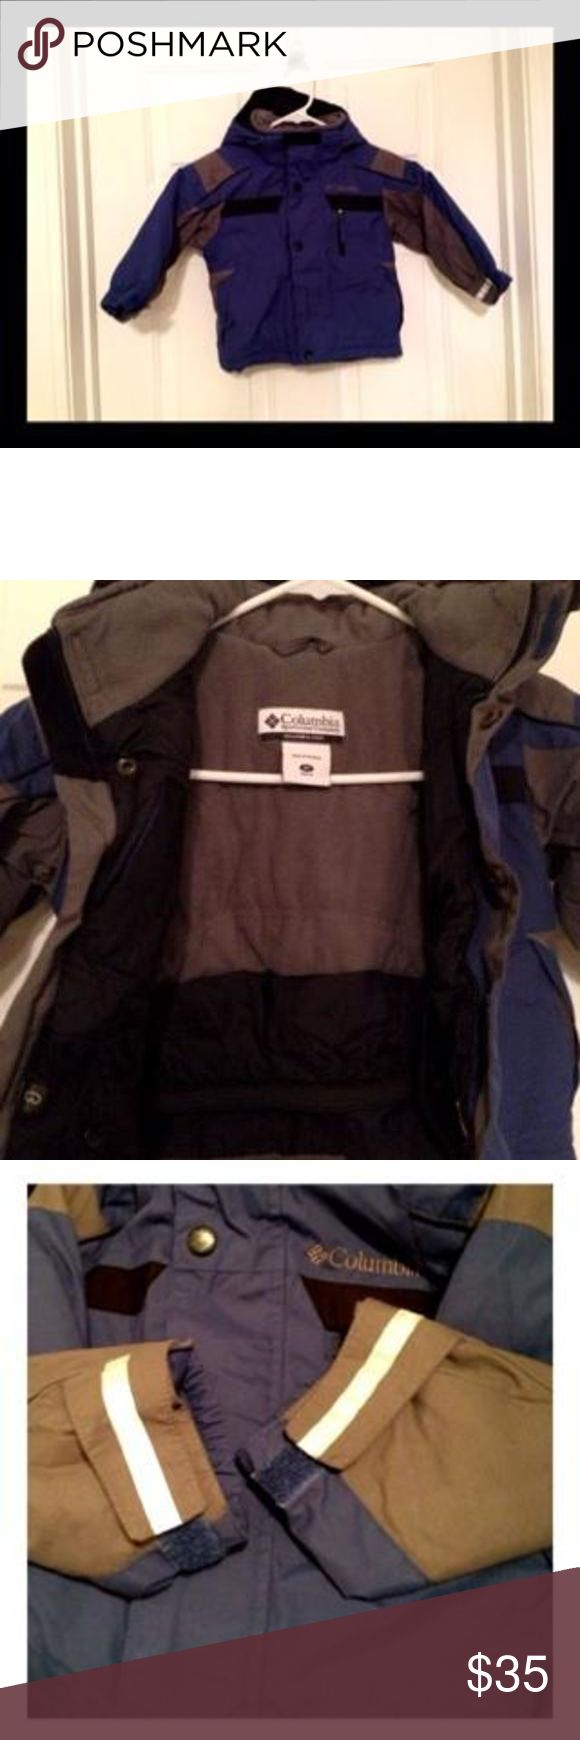 TODDLER COLUMBIA COAT Dark blue color. Zipper works. No stains on the sleeves. In wonderful condition. Can even fit up to a 3T! Columbia Shirts & Tops